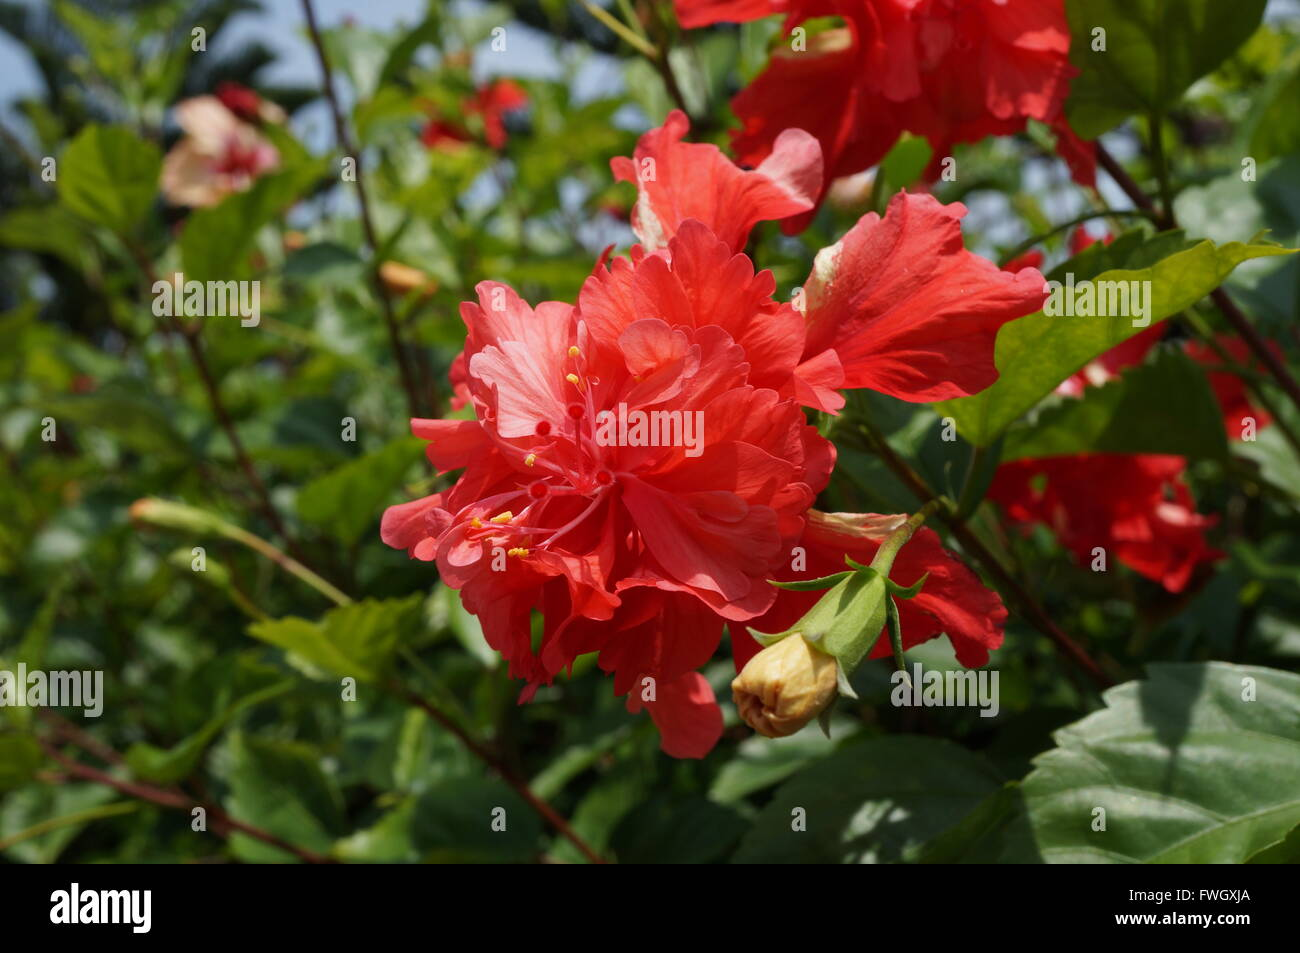 Double bloom red hibiscus flower stock photo 101790370 alamy double bloom red hibiscus flower izmirmasajfo